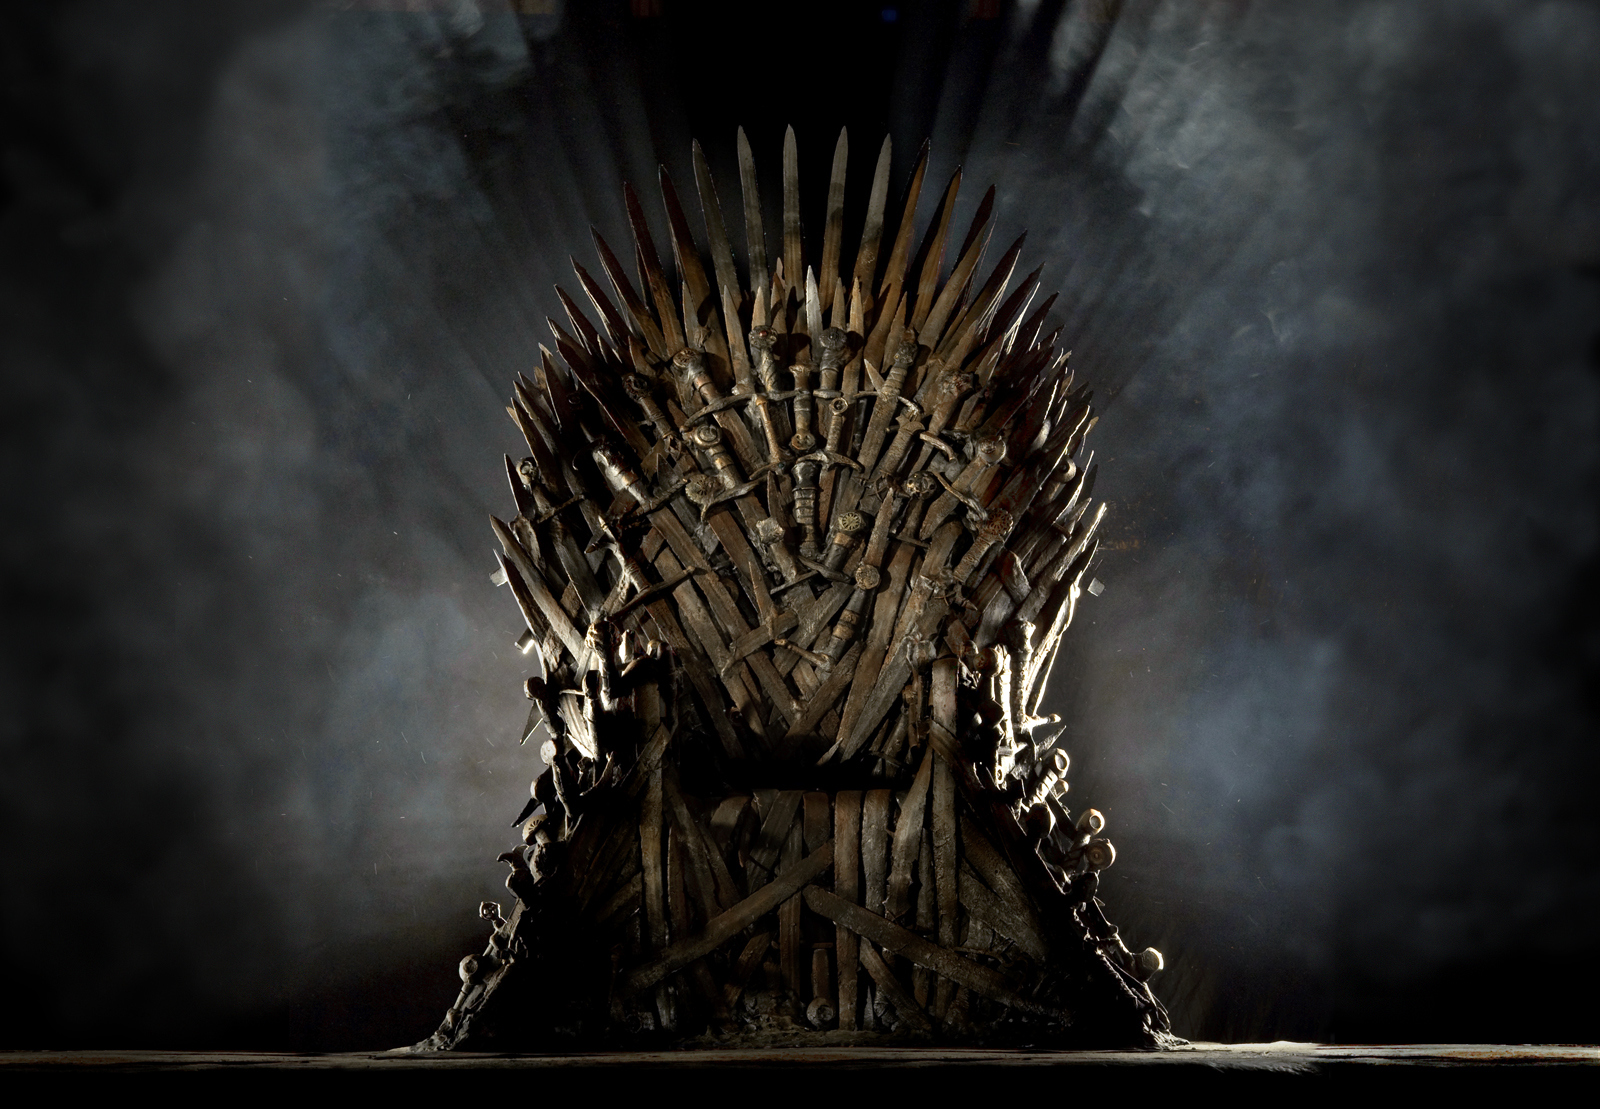 You Can Get Your Inner Joffrey On And Picture Taken In The Iron Throne Itself Sit That Chair Remind Everyone King Do As He Likes